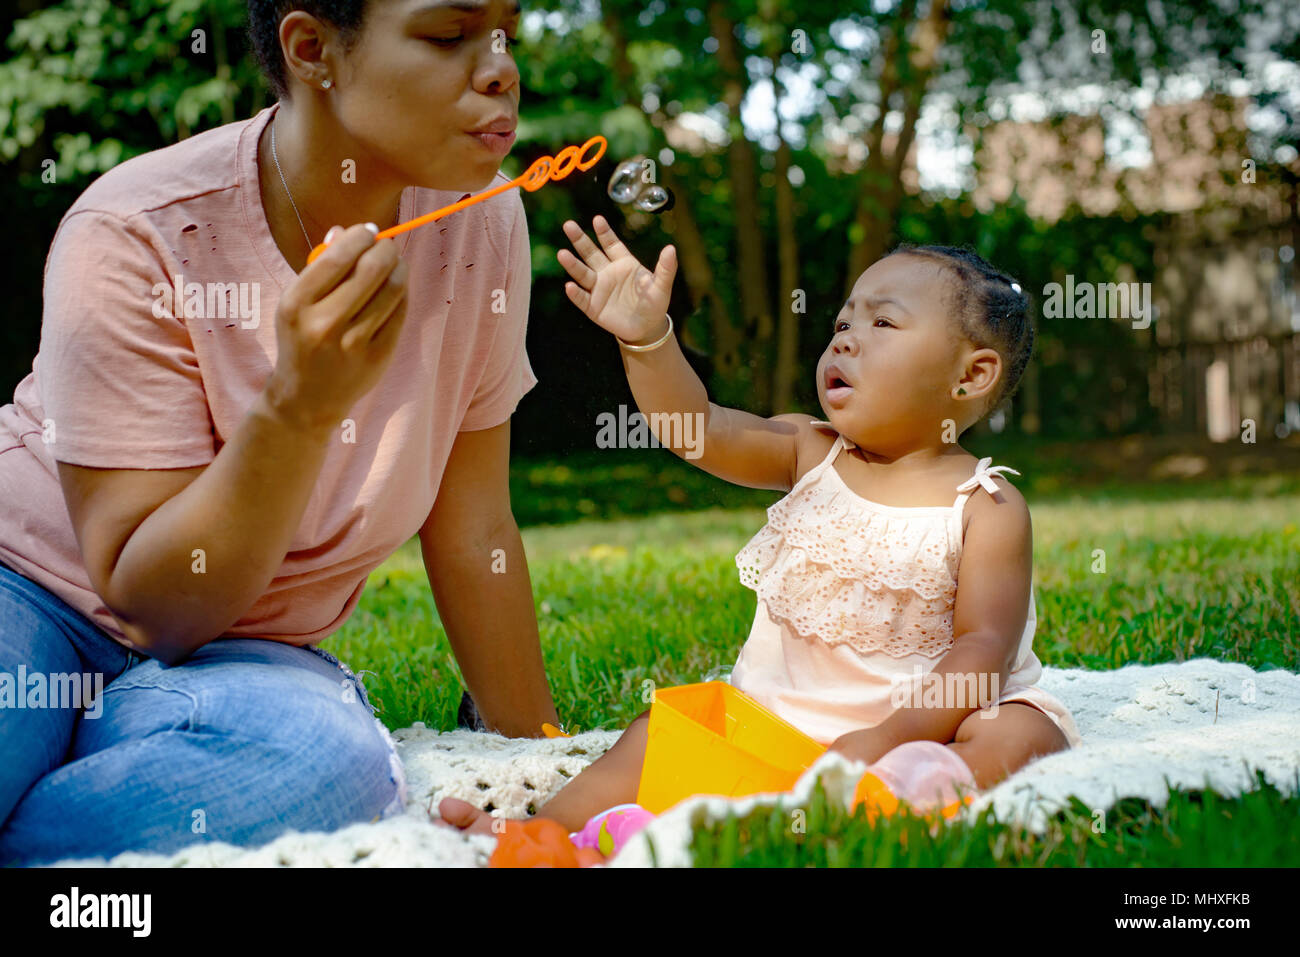 Mid adult woman blowing bubbles in garden for baby daughter - Stock Image